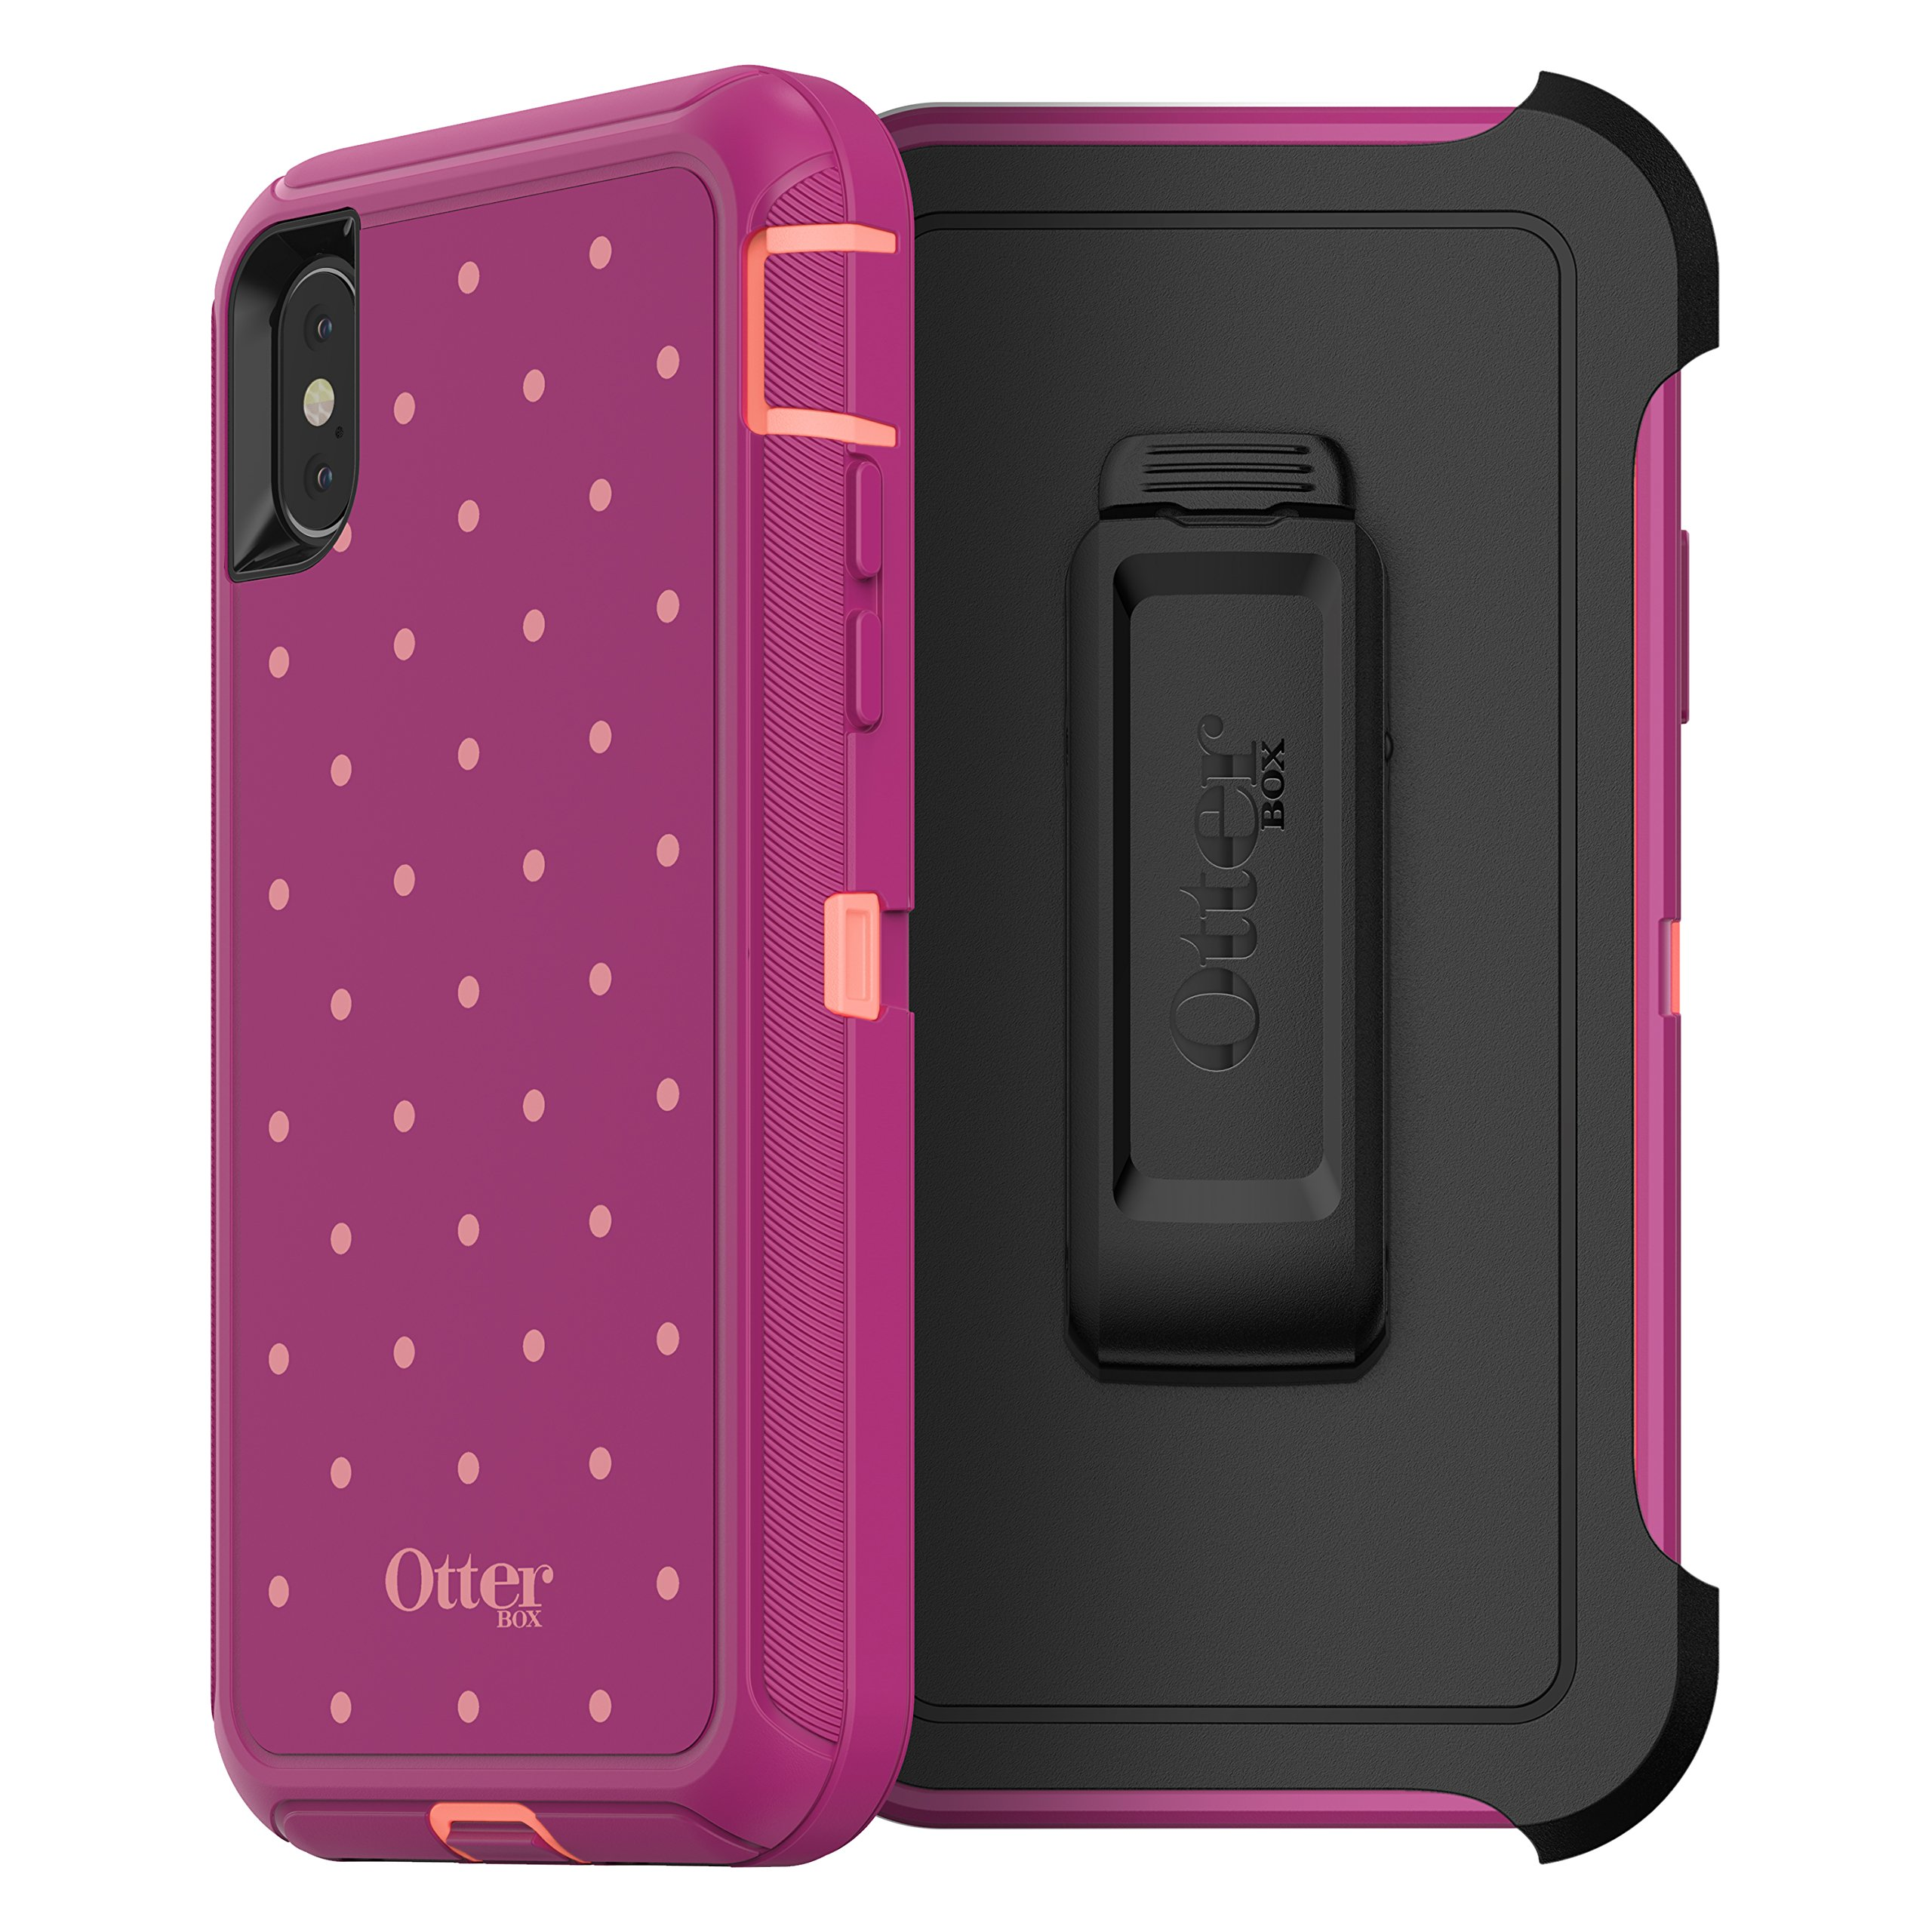 OtterBox Defender Series Case for iPhone X (ONLY) - Coral DOT (Fusion Coral/Baton Rouge/Metallic DOT)